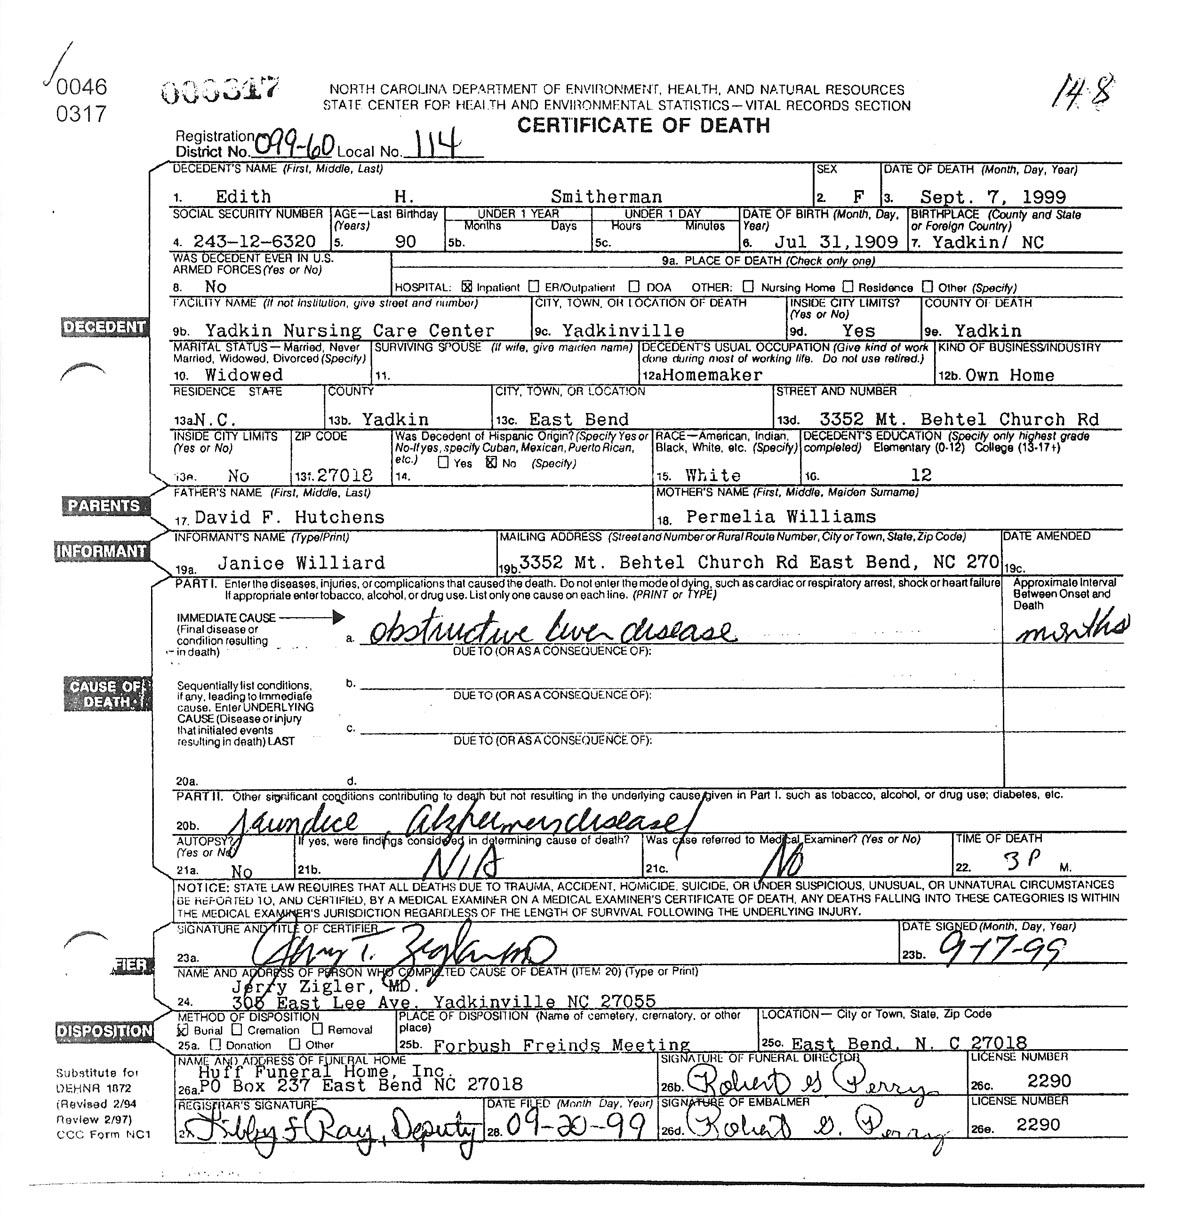 hutchins death records 1935 to 1950